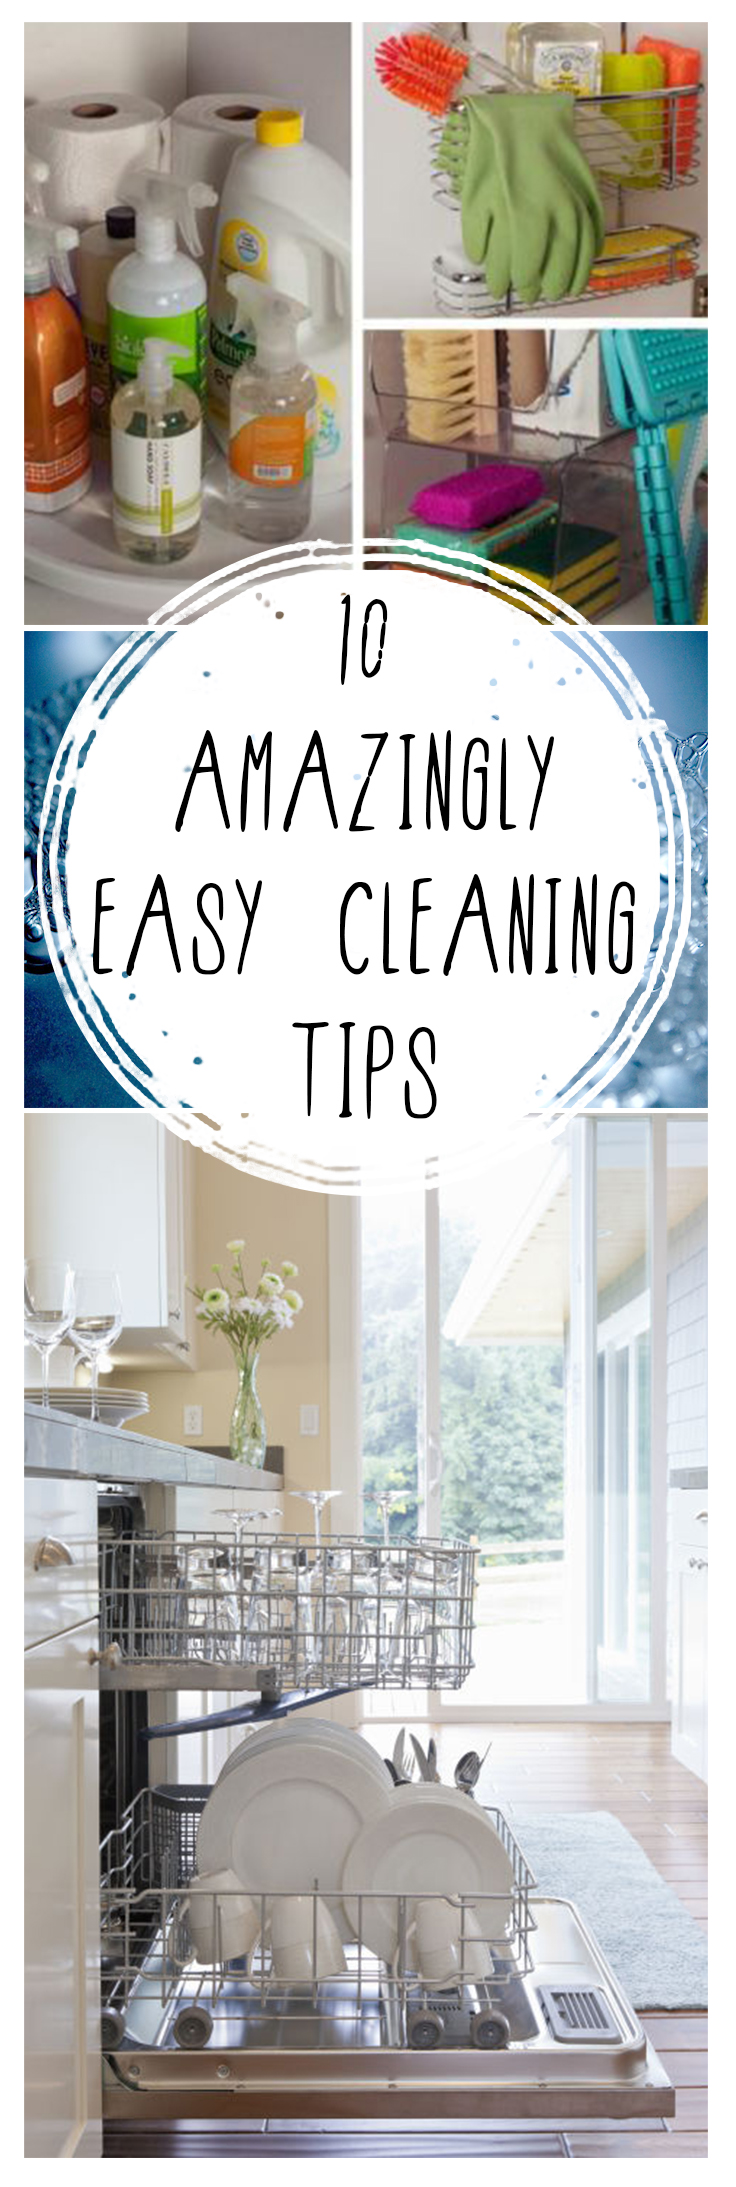 Cleaning tips, cleaning, clean hope, cleaning hacks, popular pin, DIY clean, DIY cleaning, easy cleaning hacks.